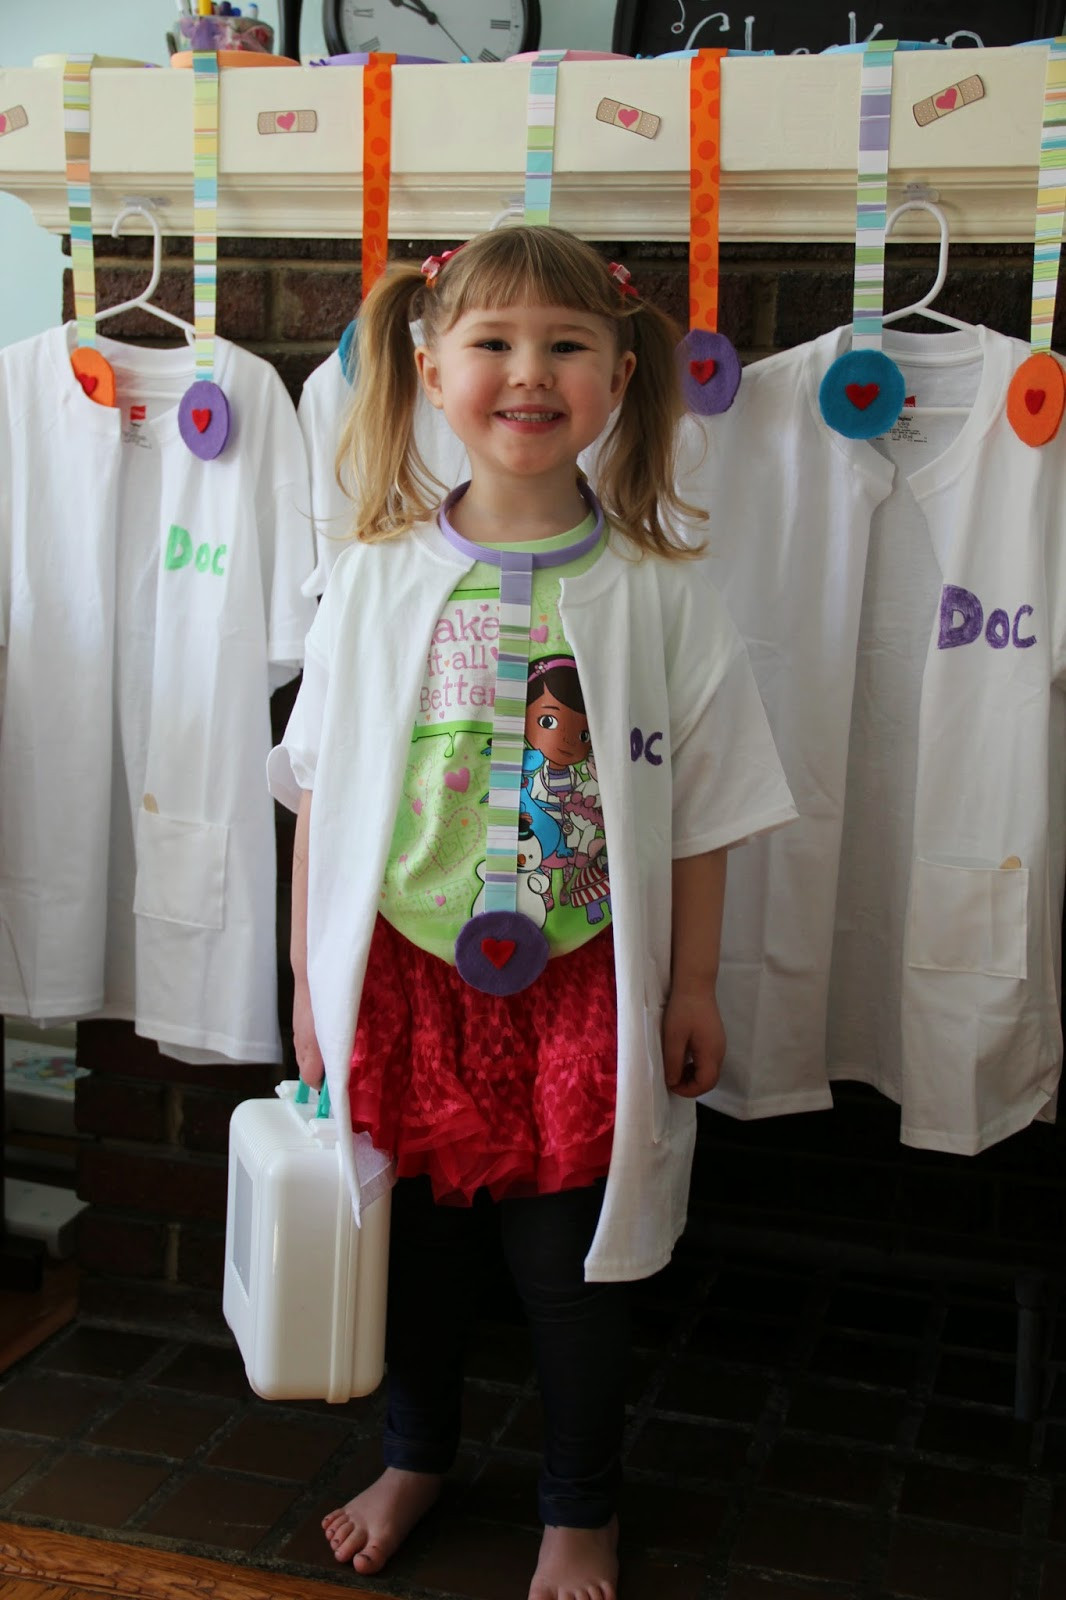 DIY Doc Mcstuffins Costume  Don t for to check out my DIY Toy Stethoscope tutorial